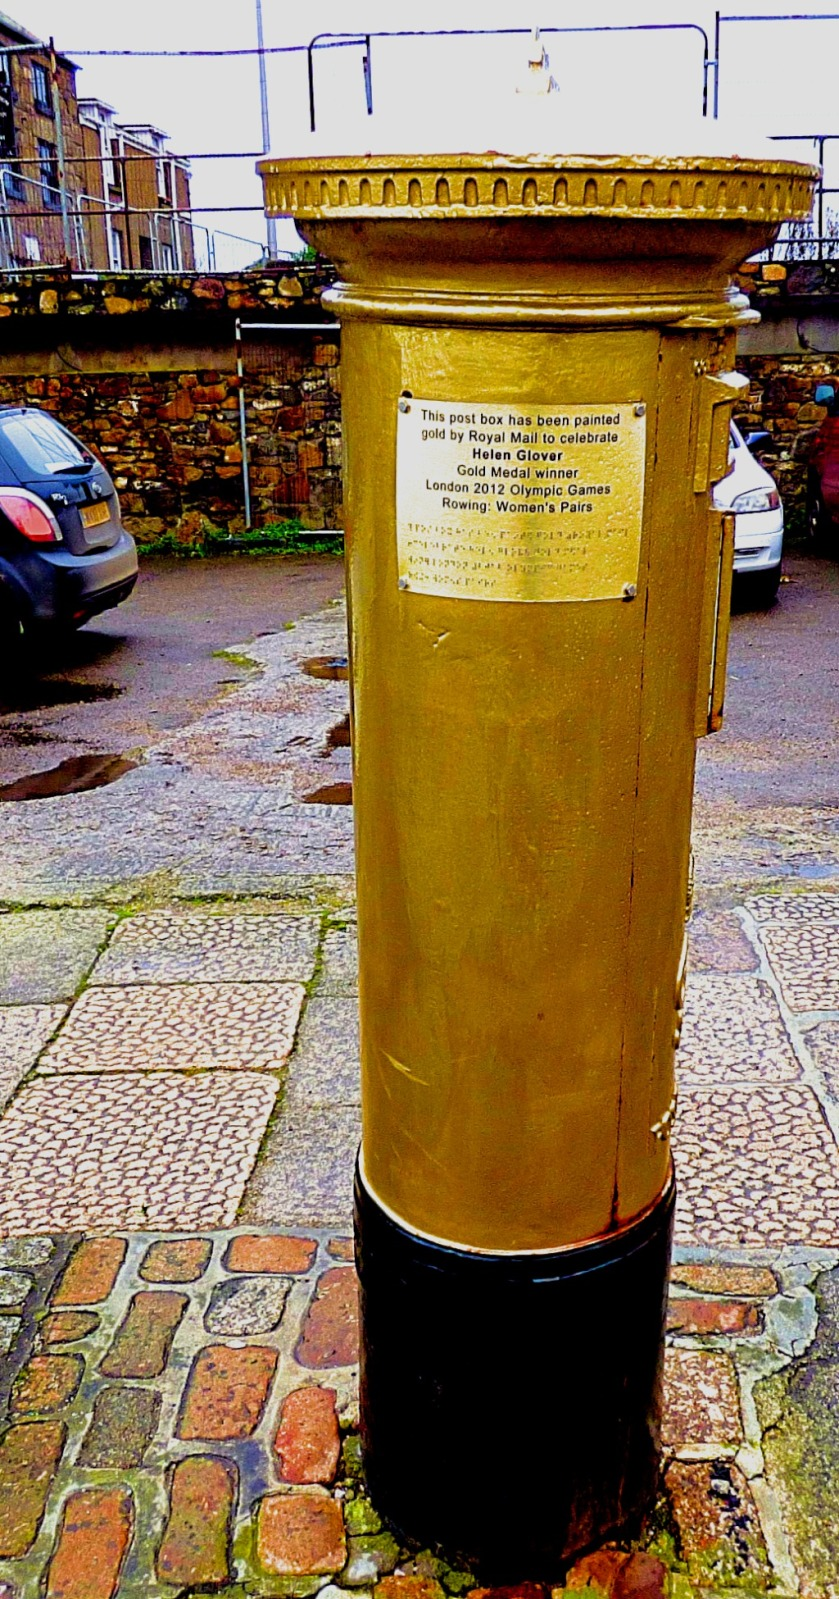 Helen Glover post box